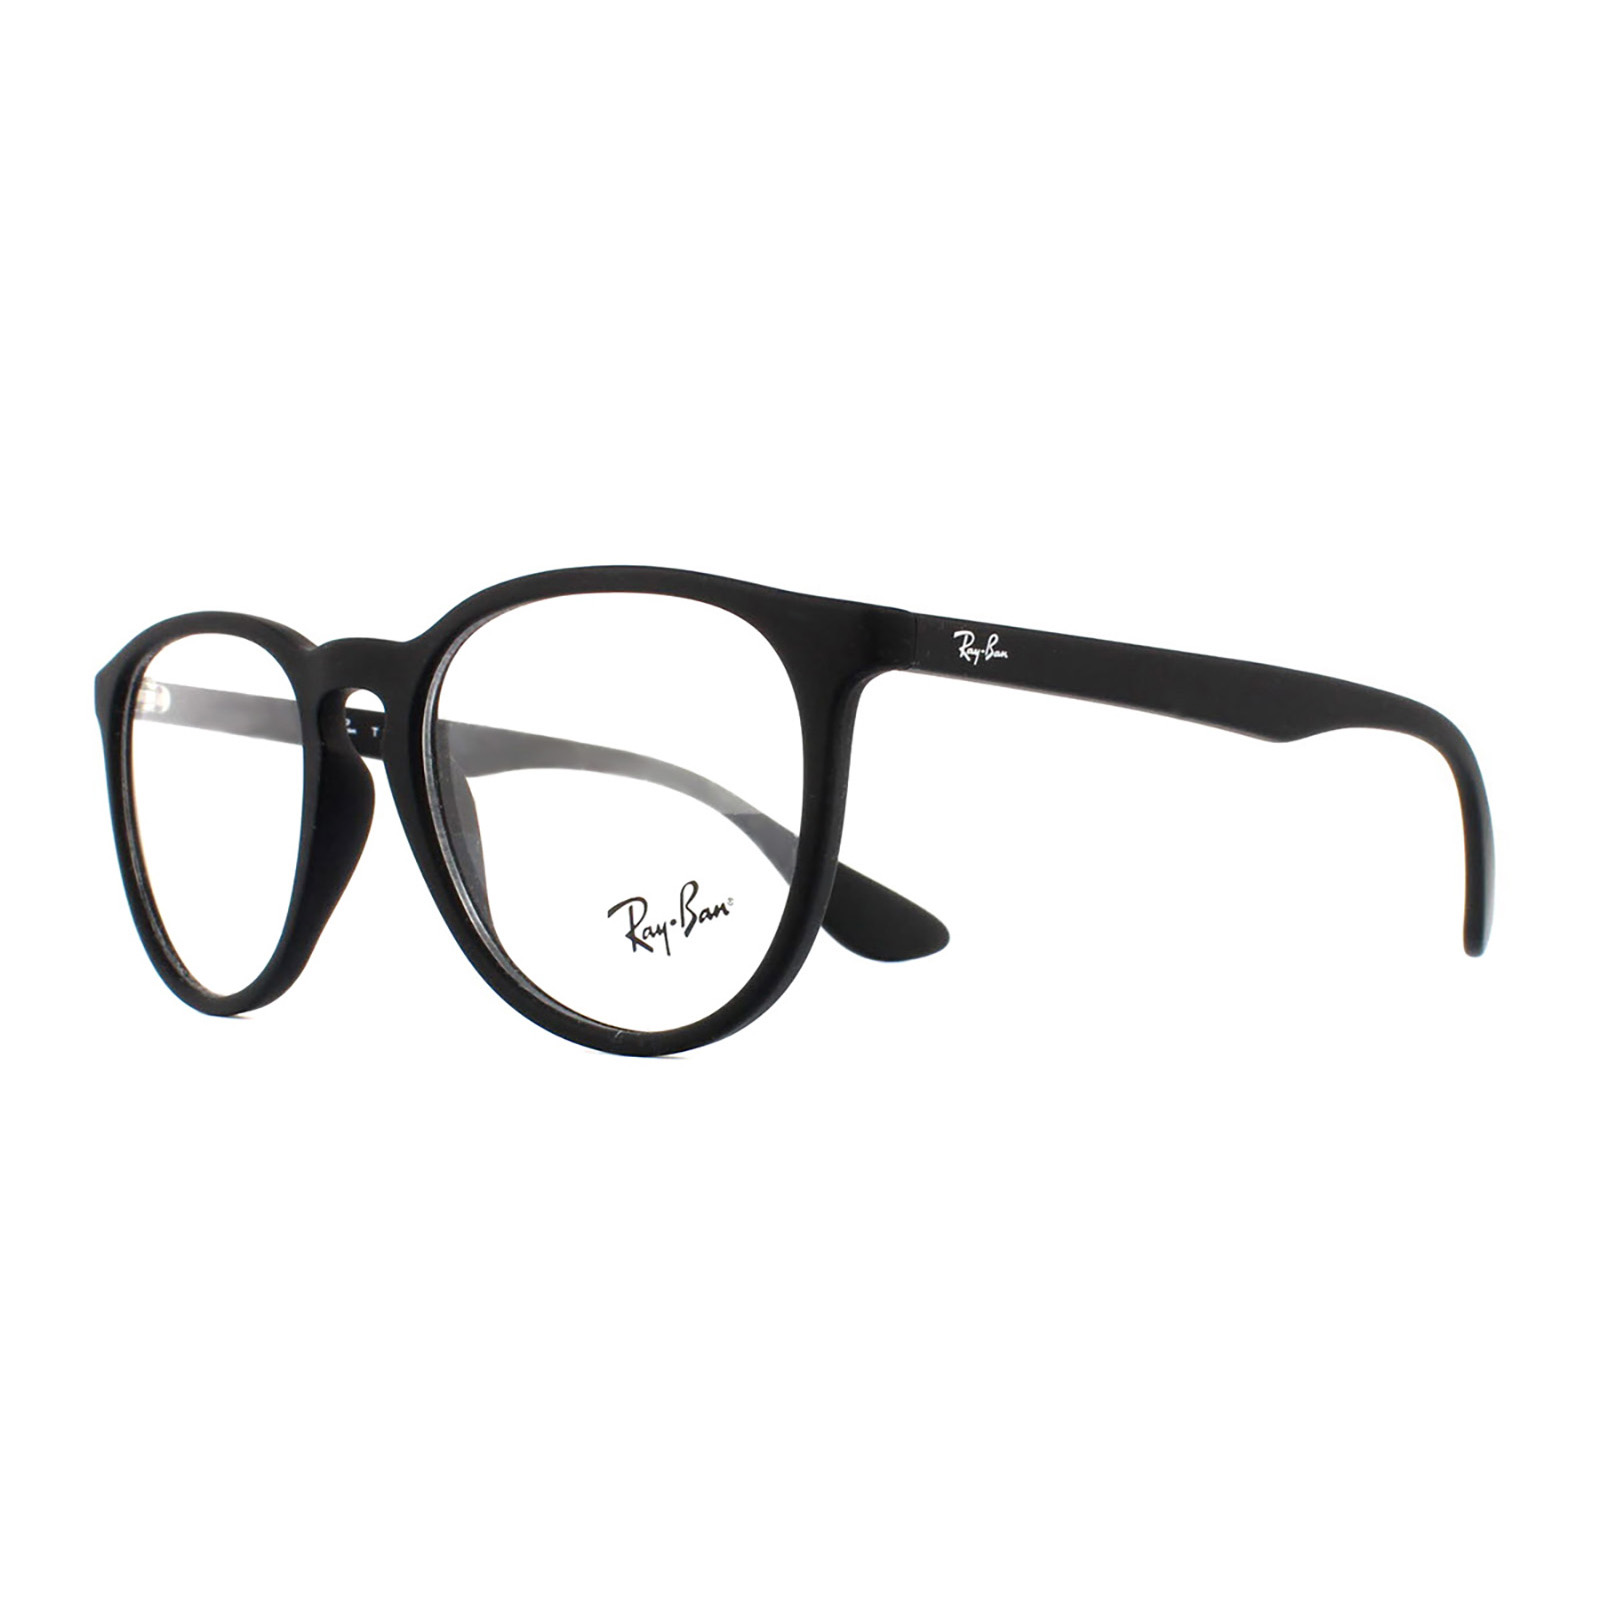 629b1bb23ef Ray Ban Sunglasses Rubber Frame